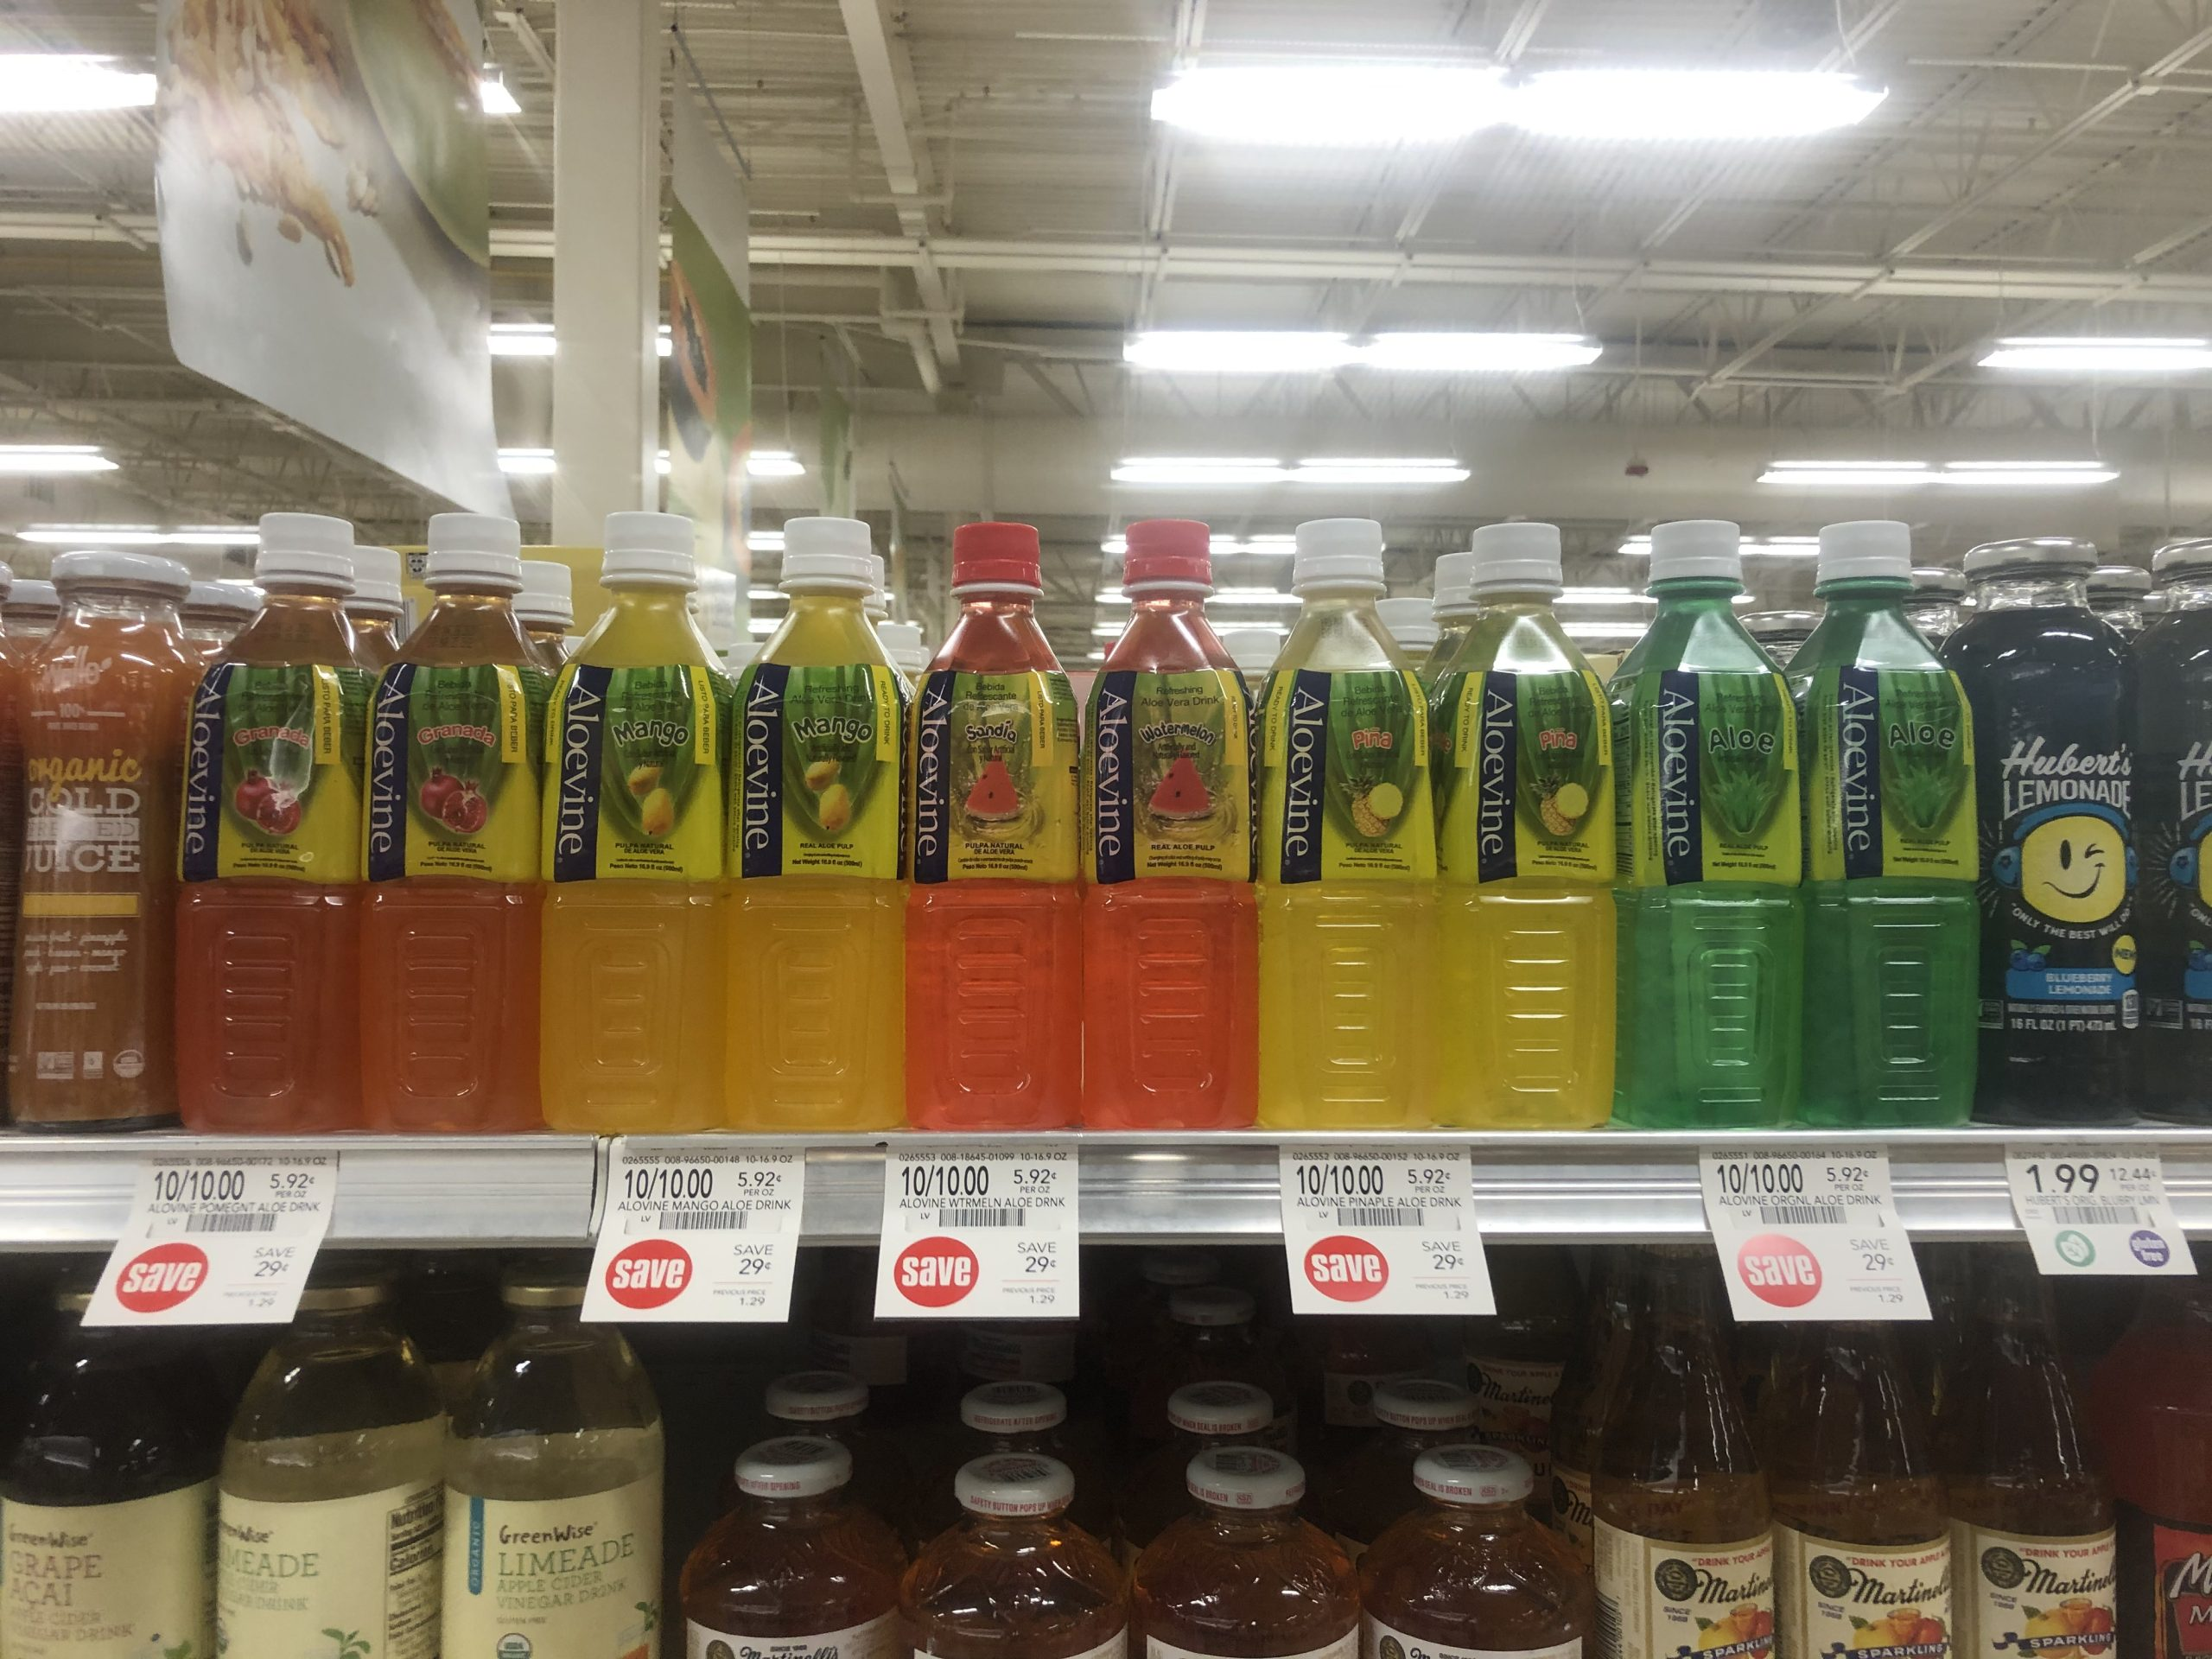 Delicious Aloevine Drinks Are On Sale 10/$10 At Publix on I Heart Publix 1